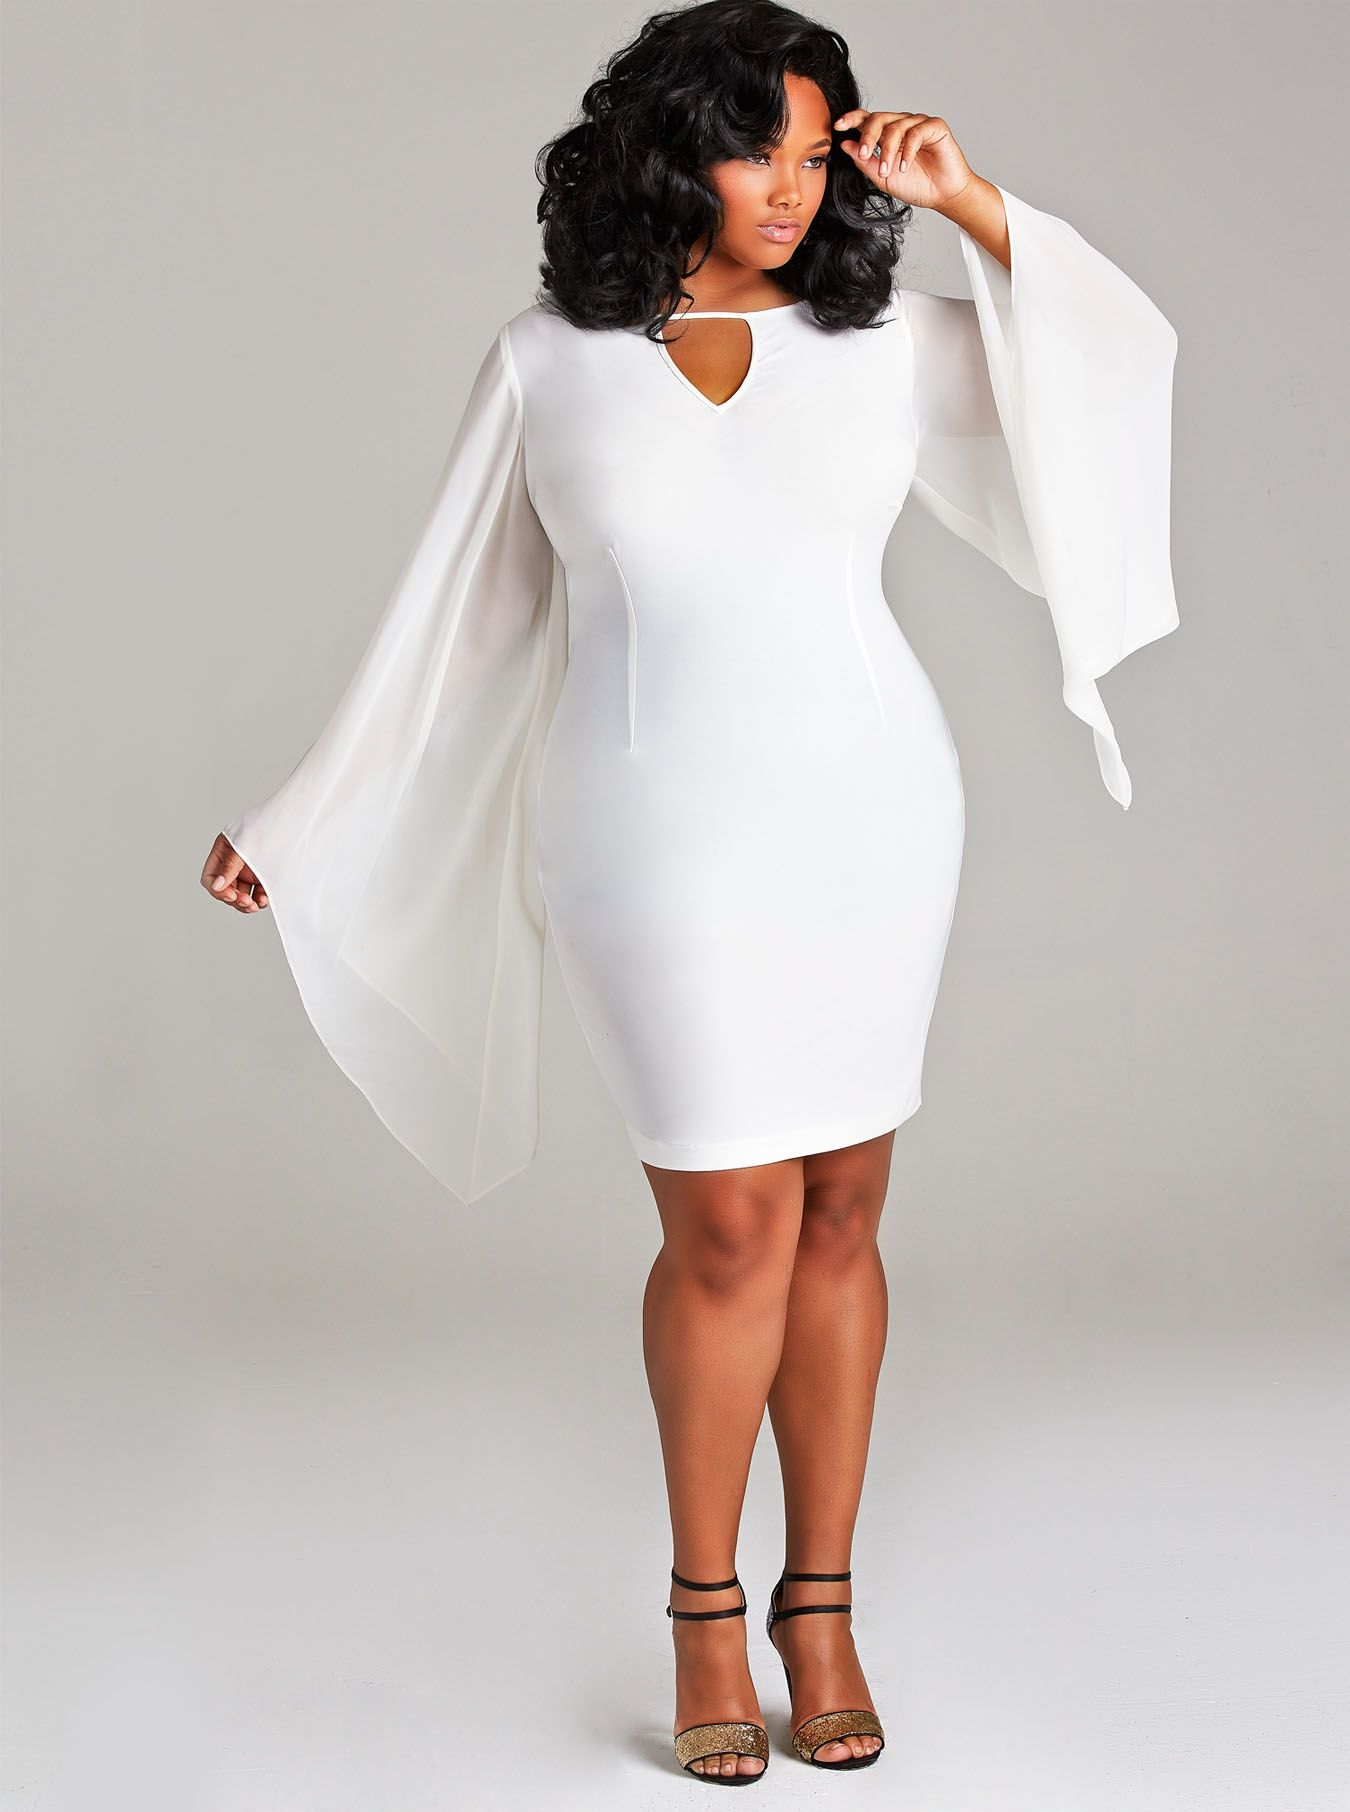 BLACK PLUS SIZE MODELS | STYLISH CURVES | Clothes | Pinterest ...